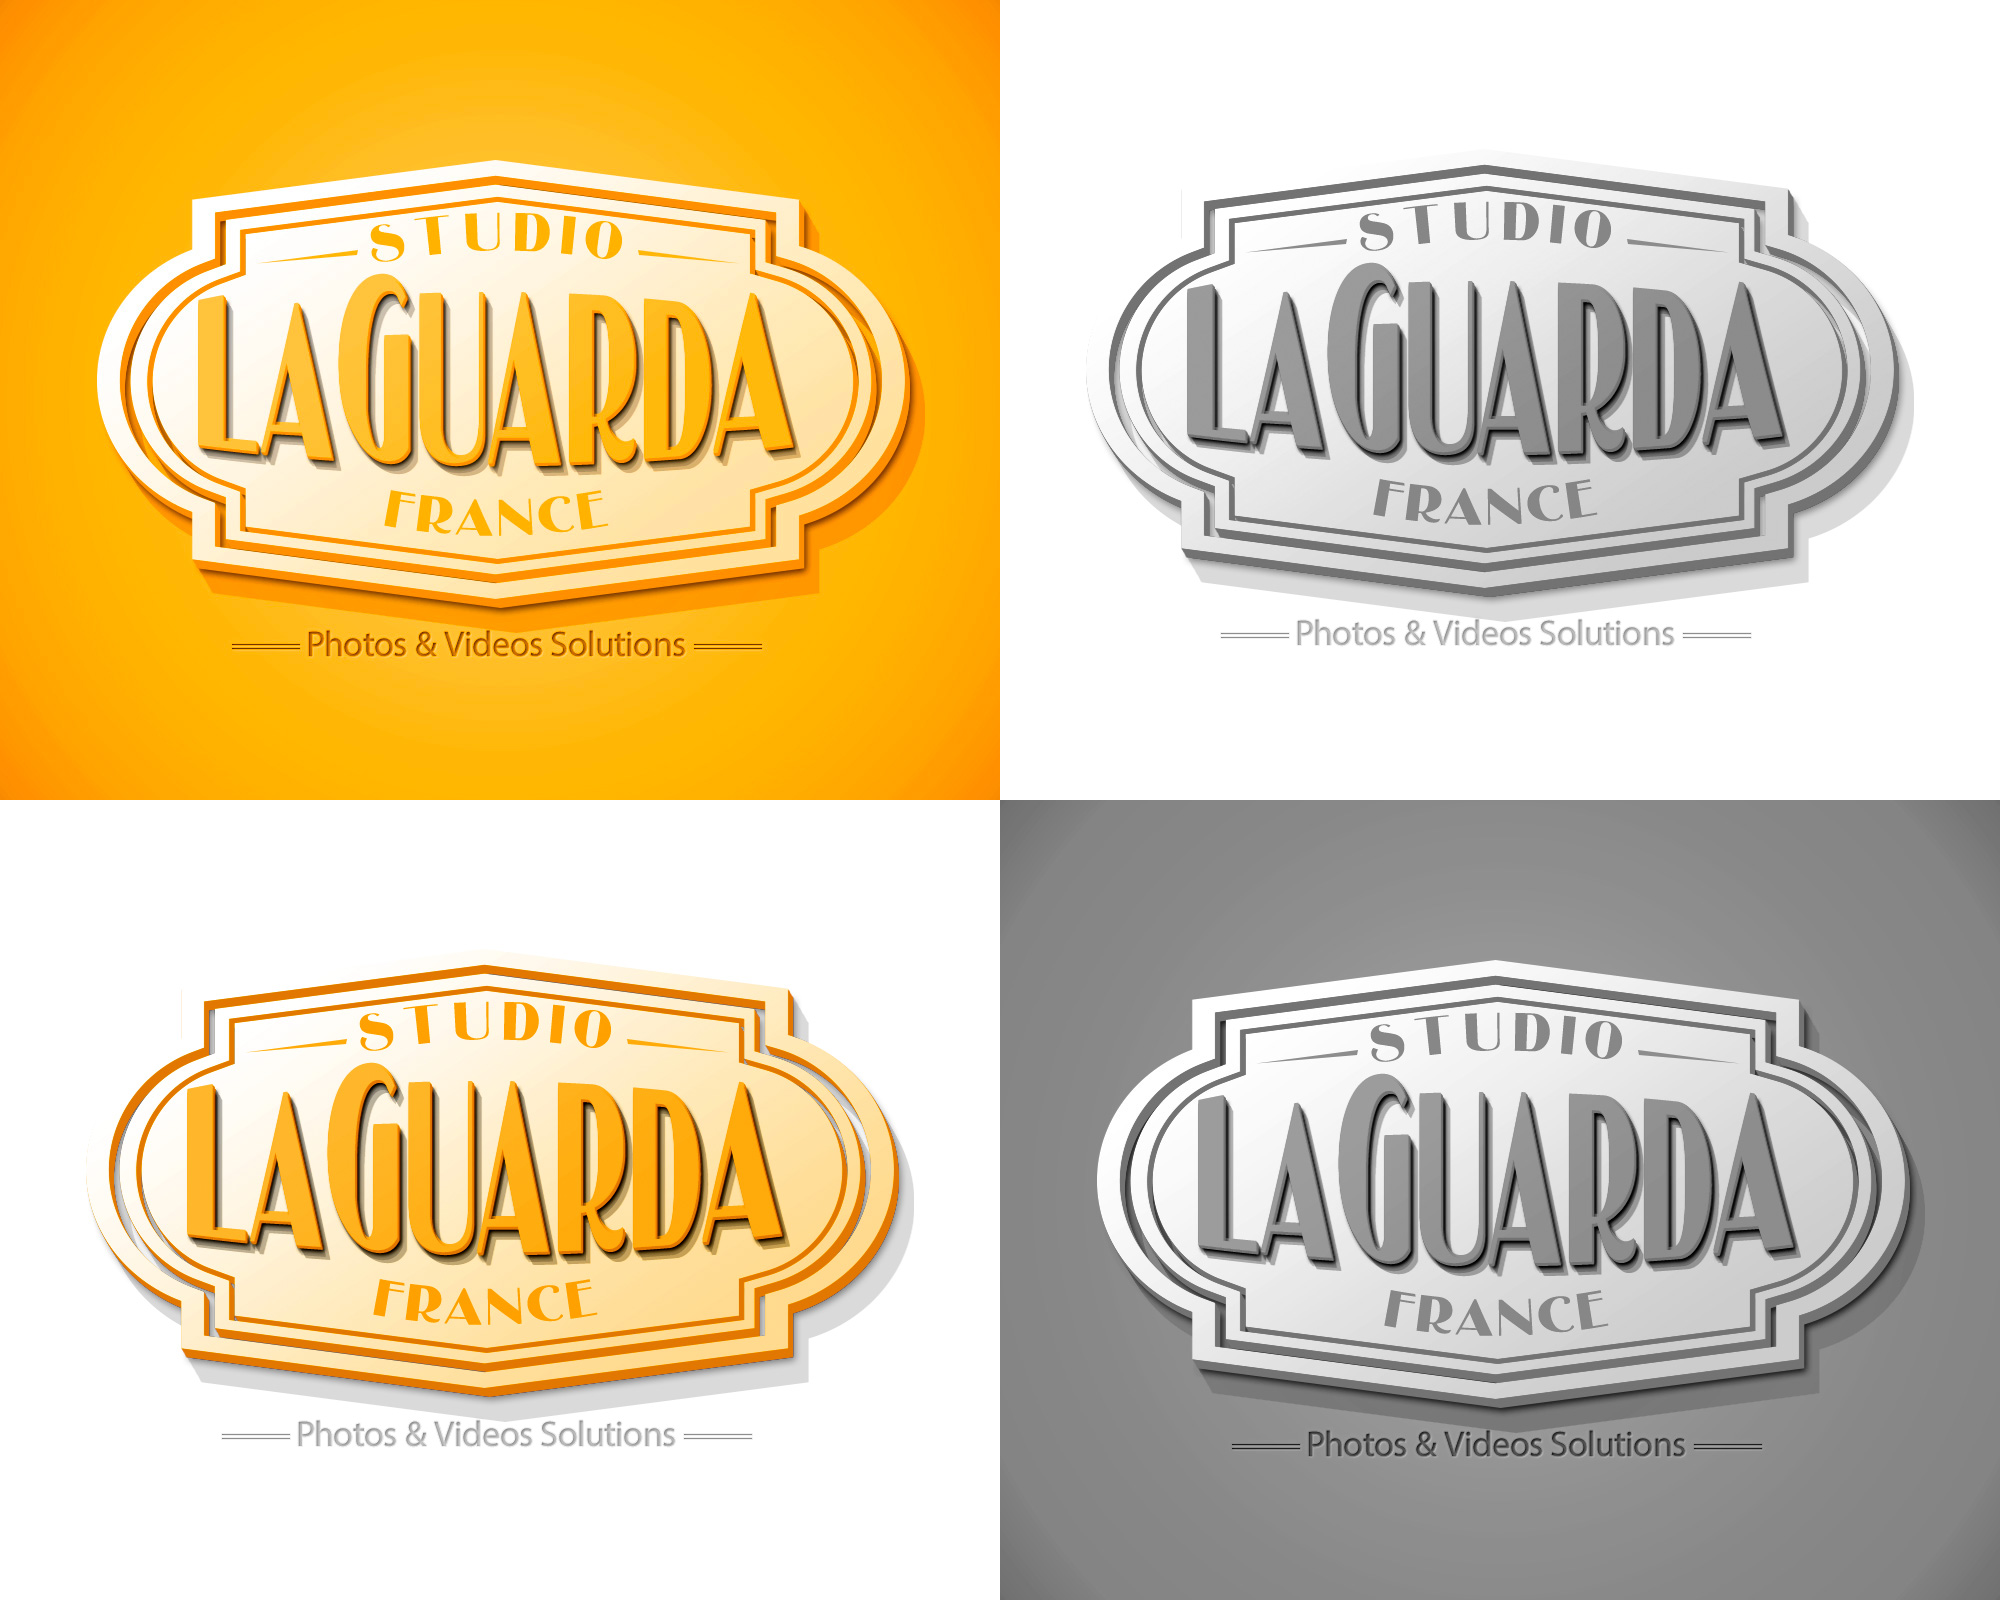 Studio LaGuarda France